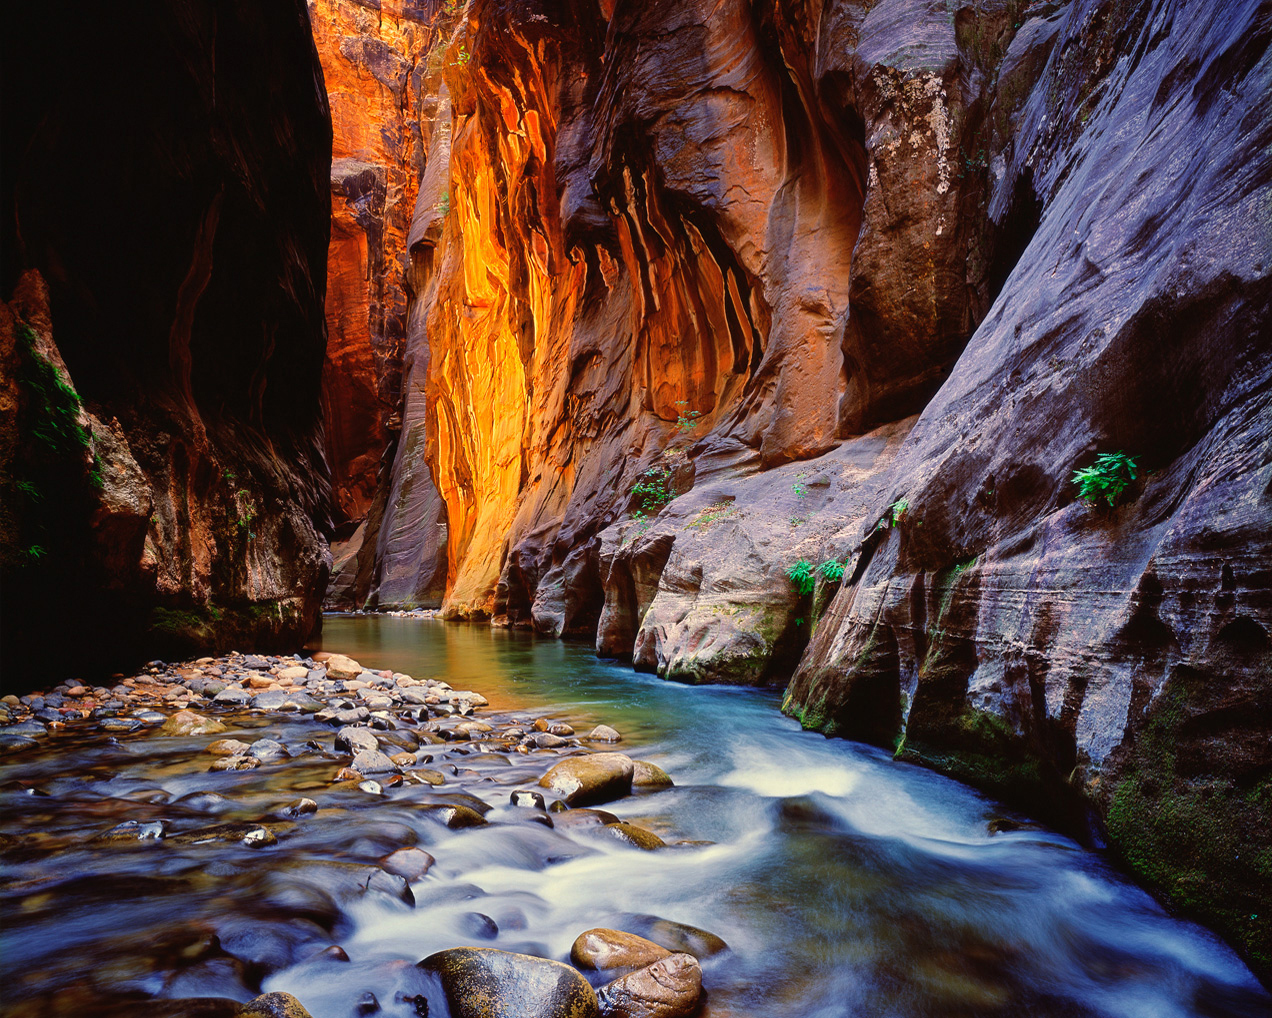 Virgin River in slot canyon photo at Zion National Park